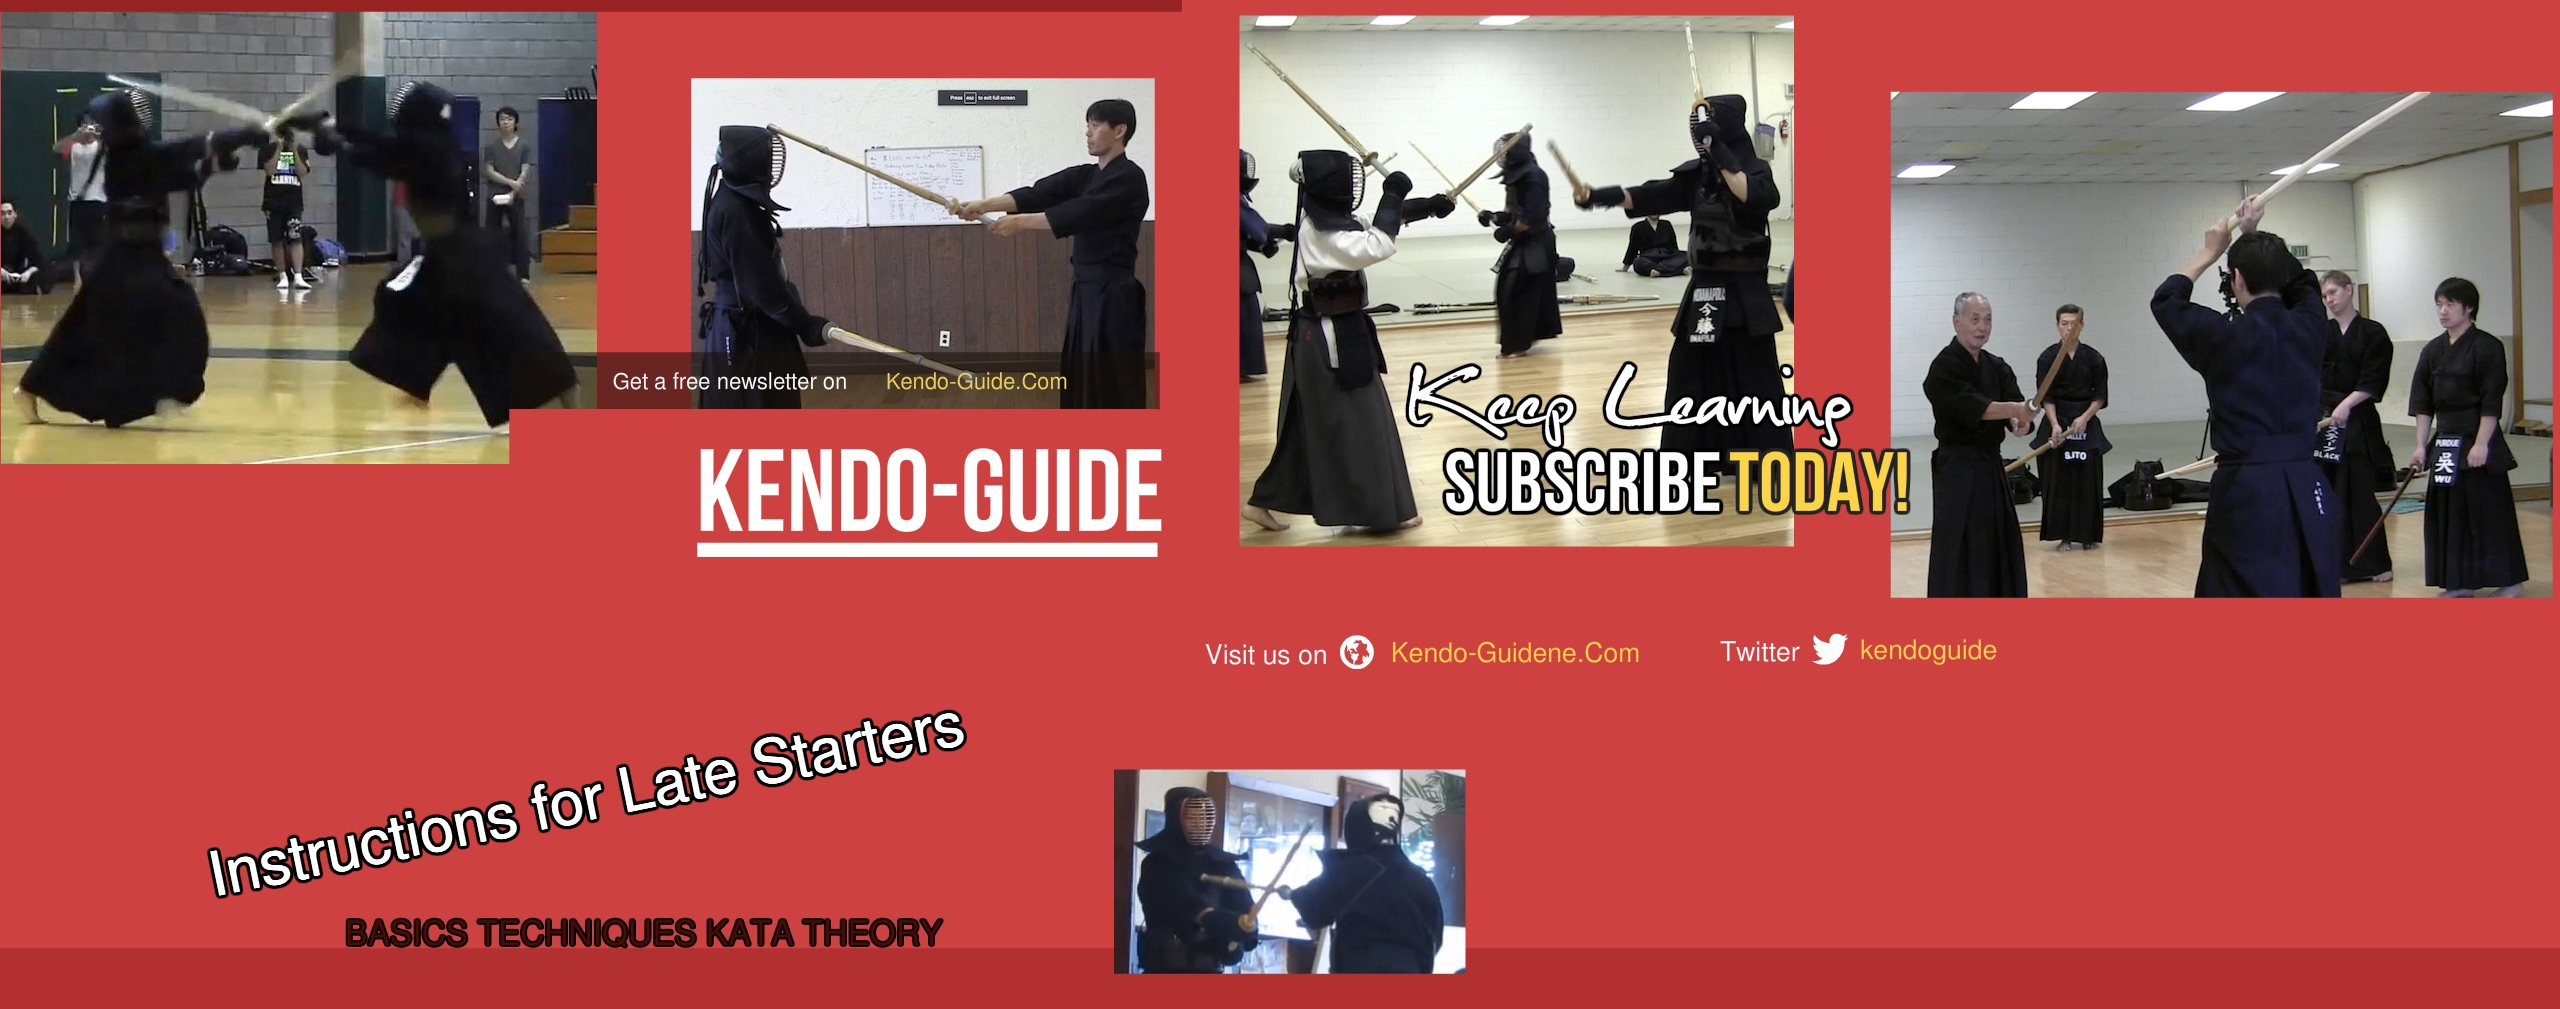 Kendo-Guide.Com YouTube Channel-Kendo Instructions for Audlts and Late Starters